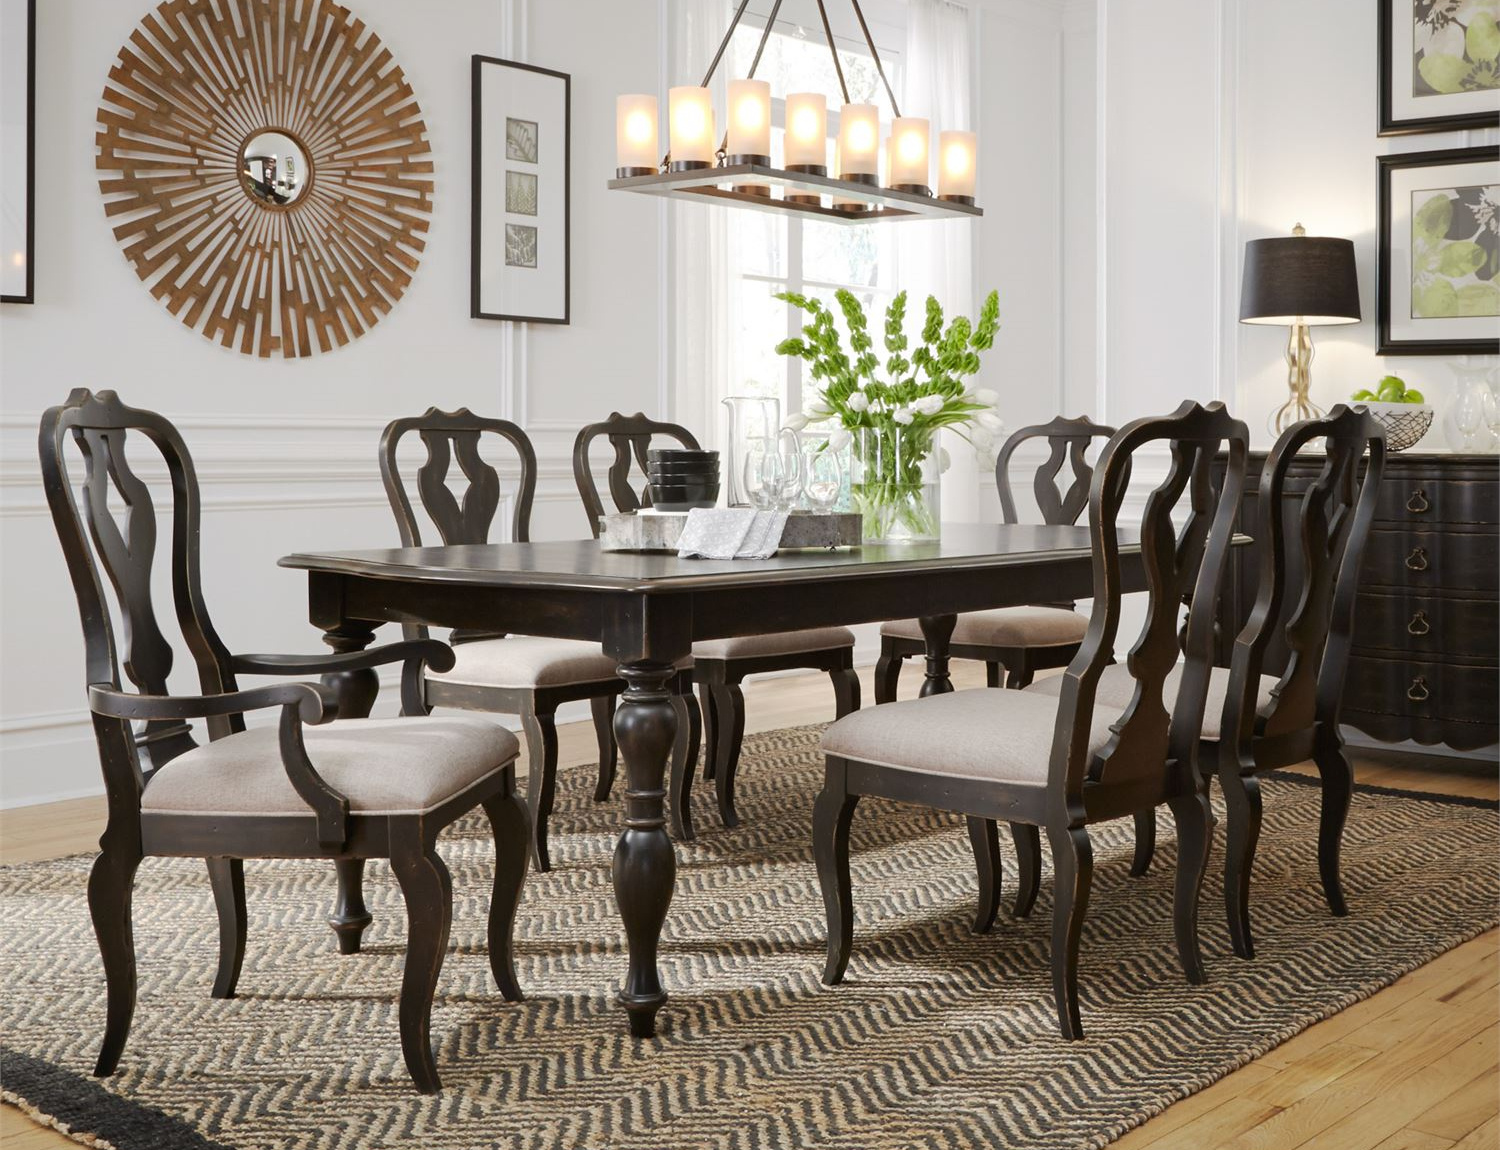 493DR Chesapeake Dining Room Set by Liberty